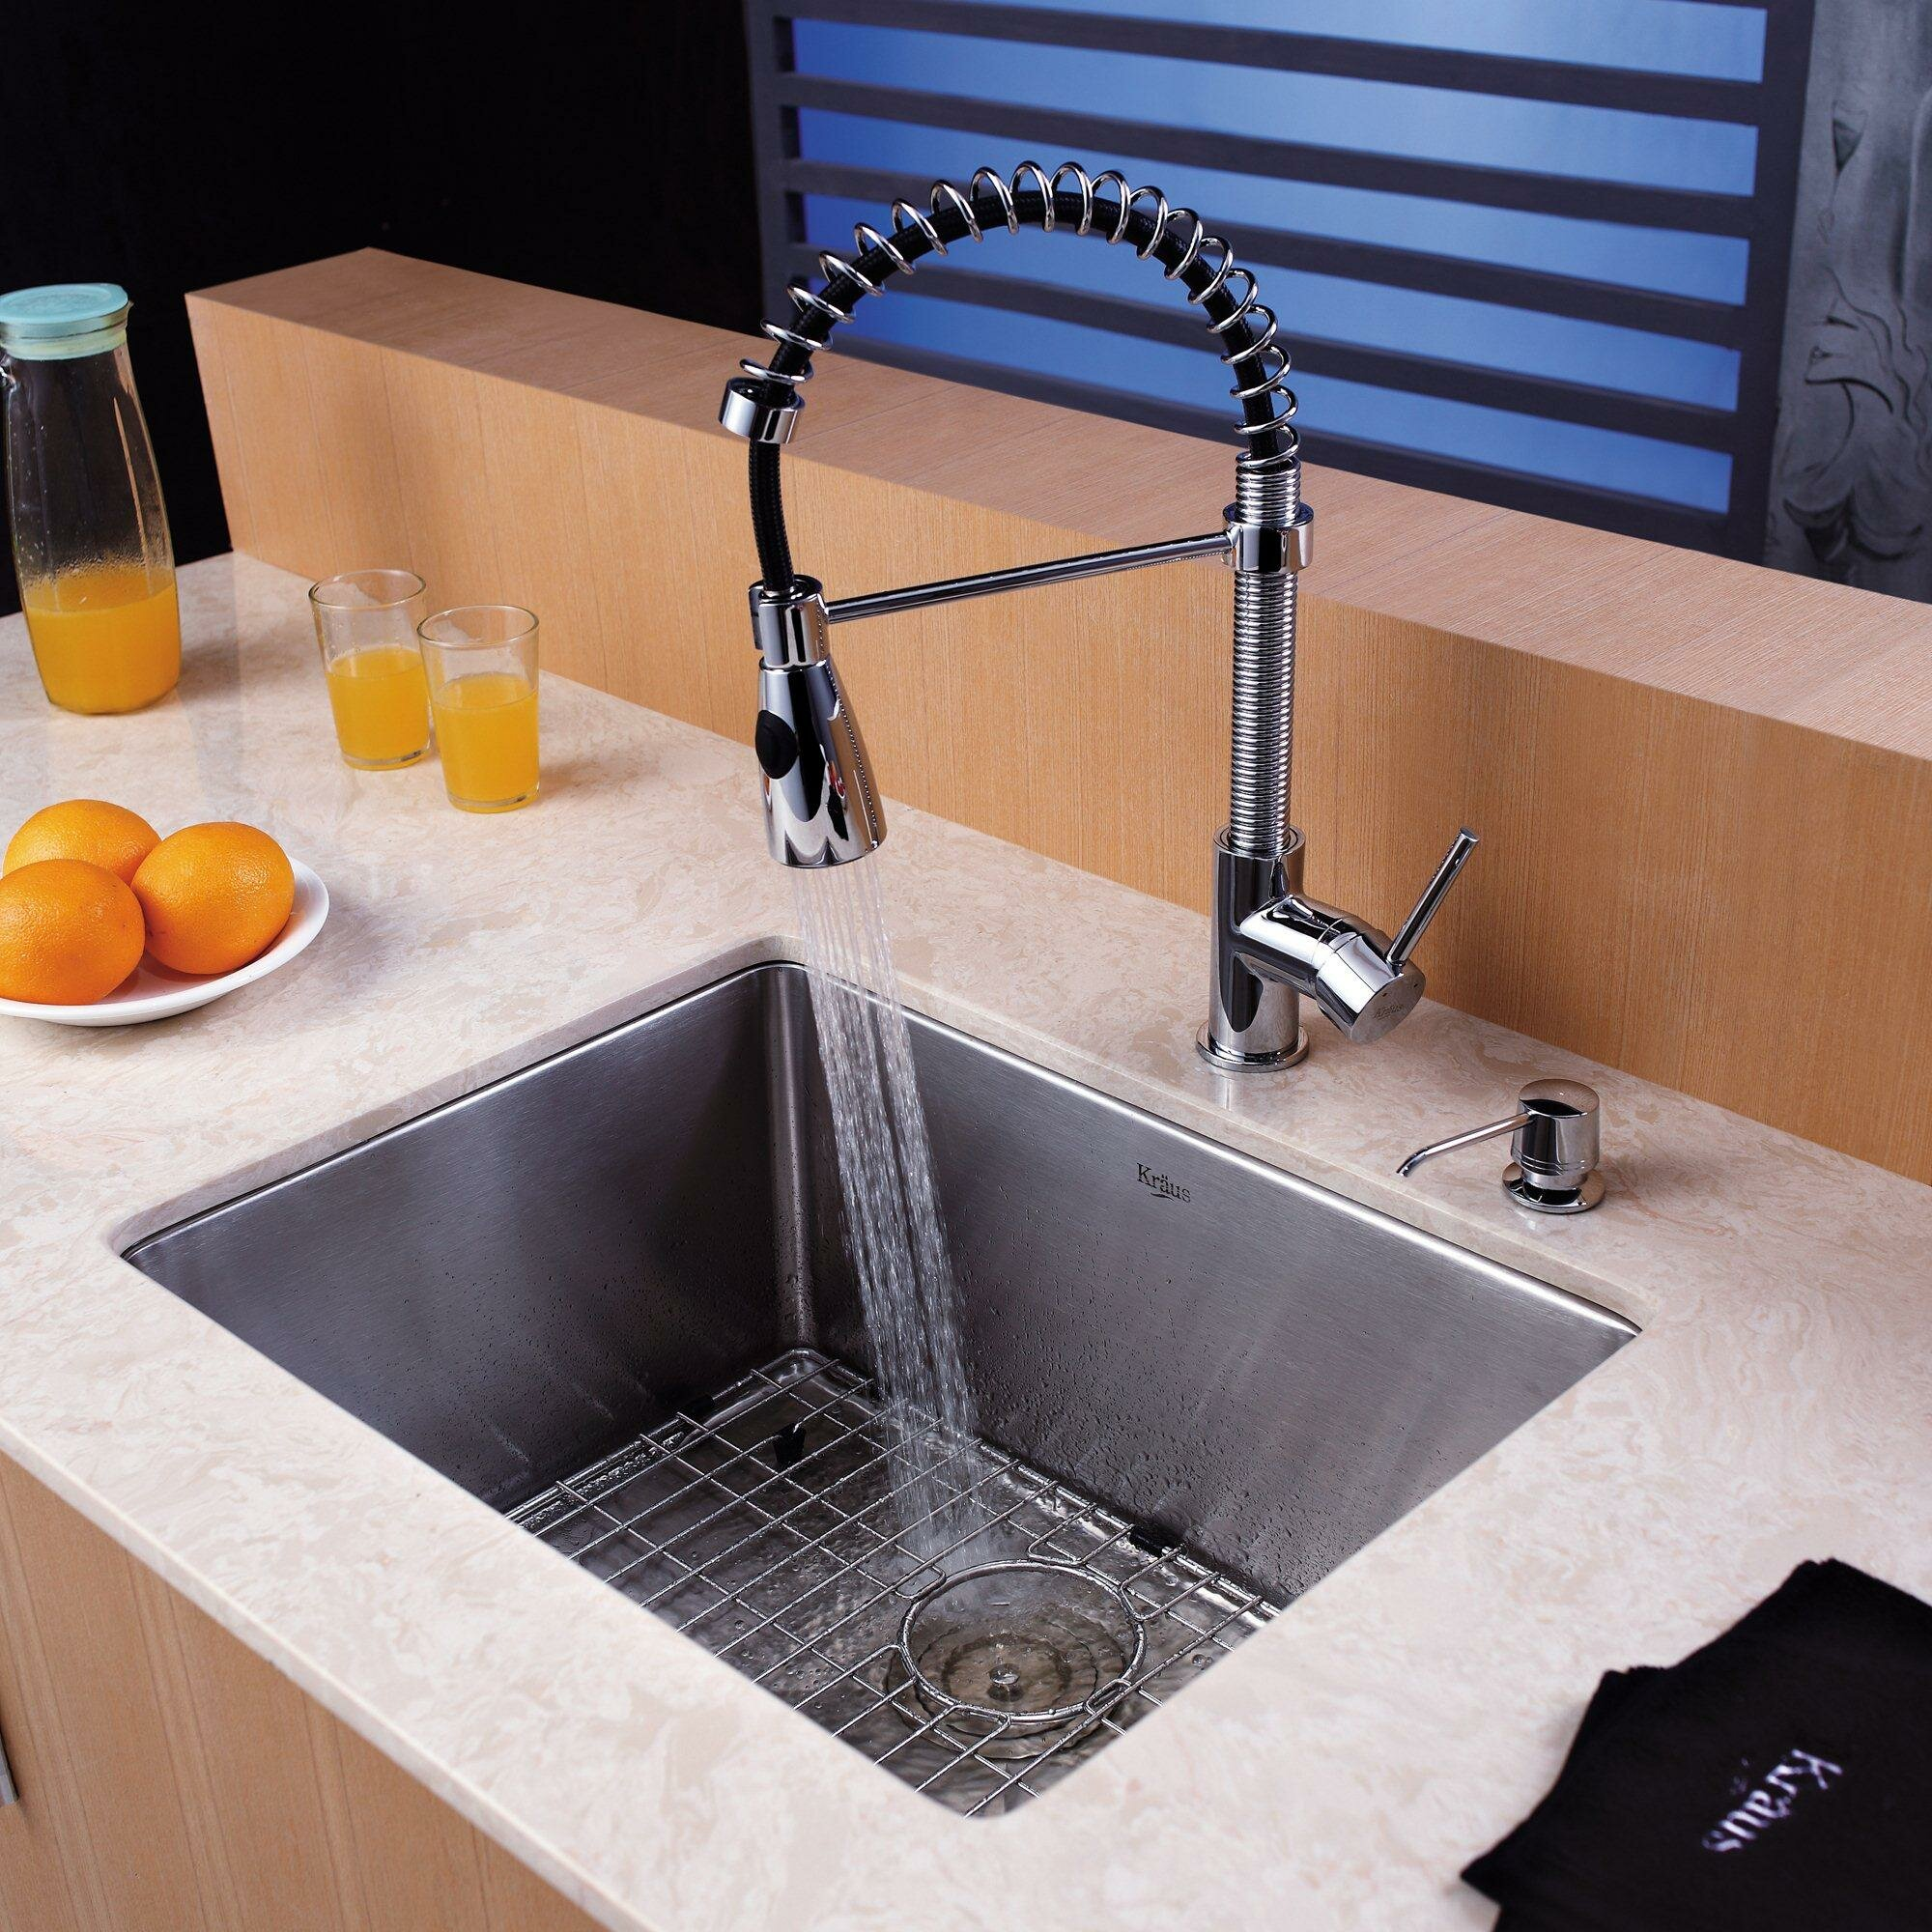 kraus 23 x 18 undermount kitchen sink with faucet and soap dispenser reviews wayfair. Black Bedroom Furniture Sets. Home Design Ideas